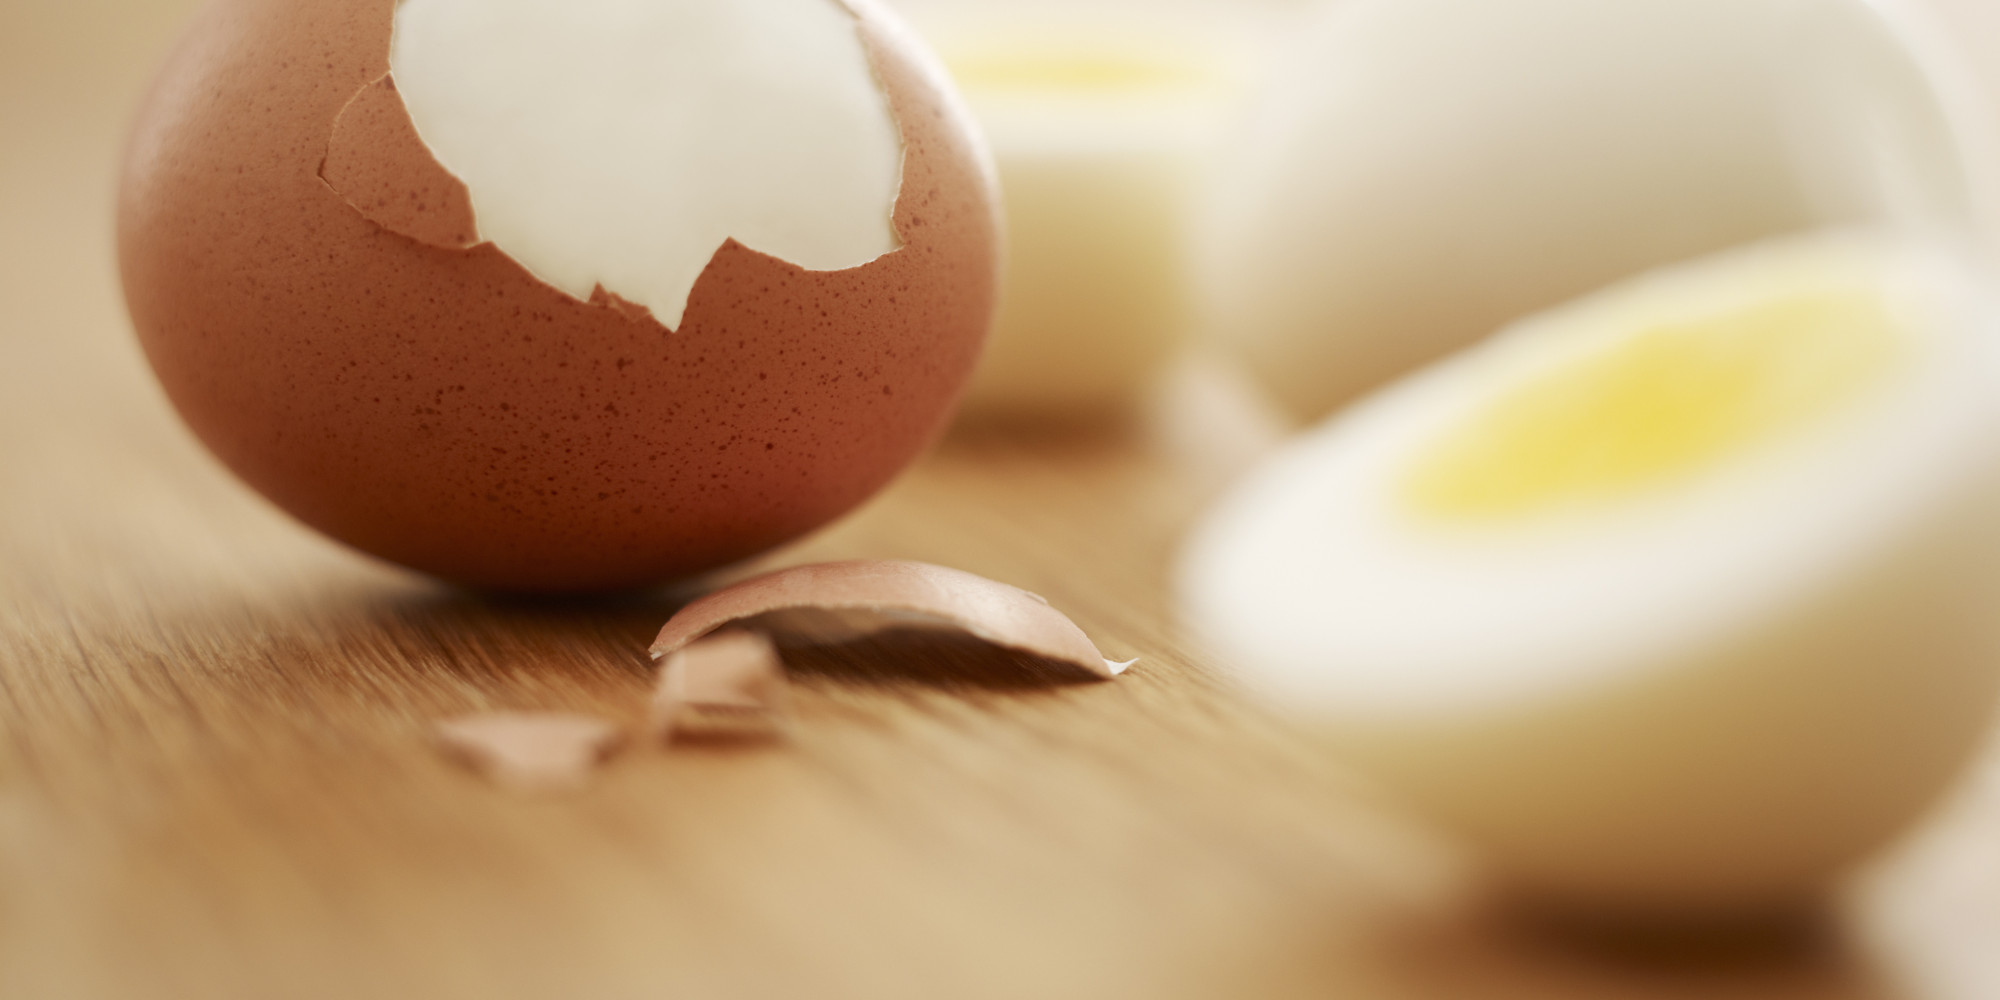 The Best Way to Peel Hard-Boiled Eggs | The Huffington Post